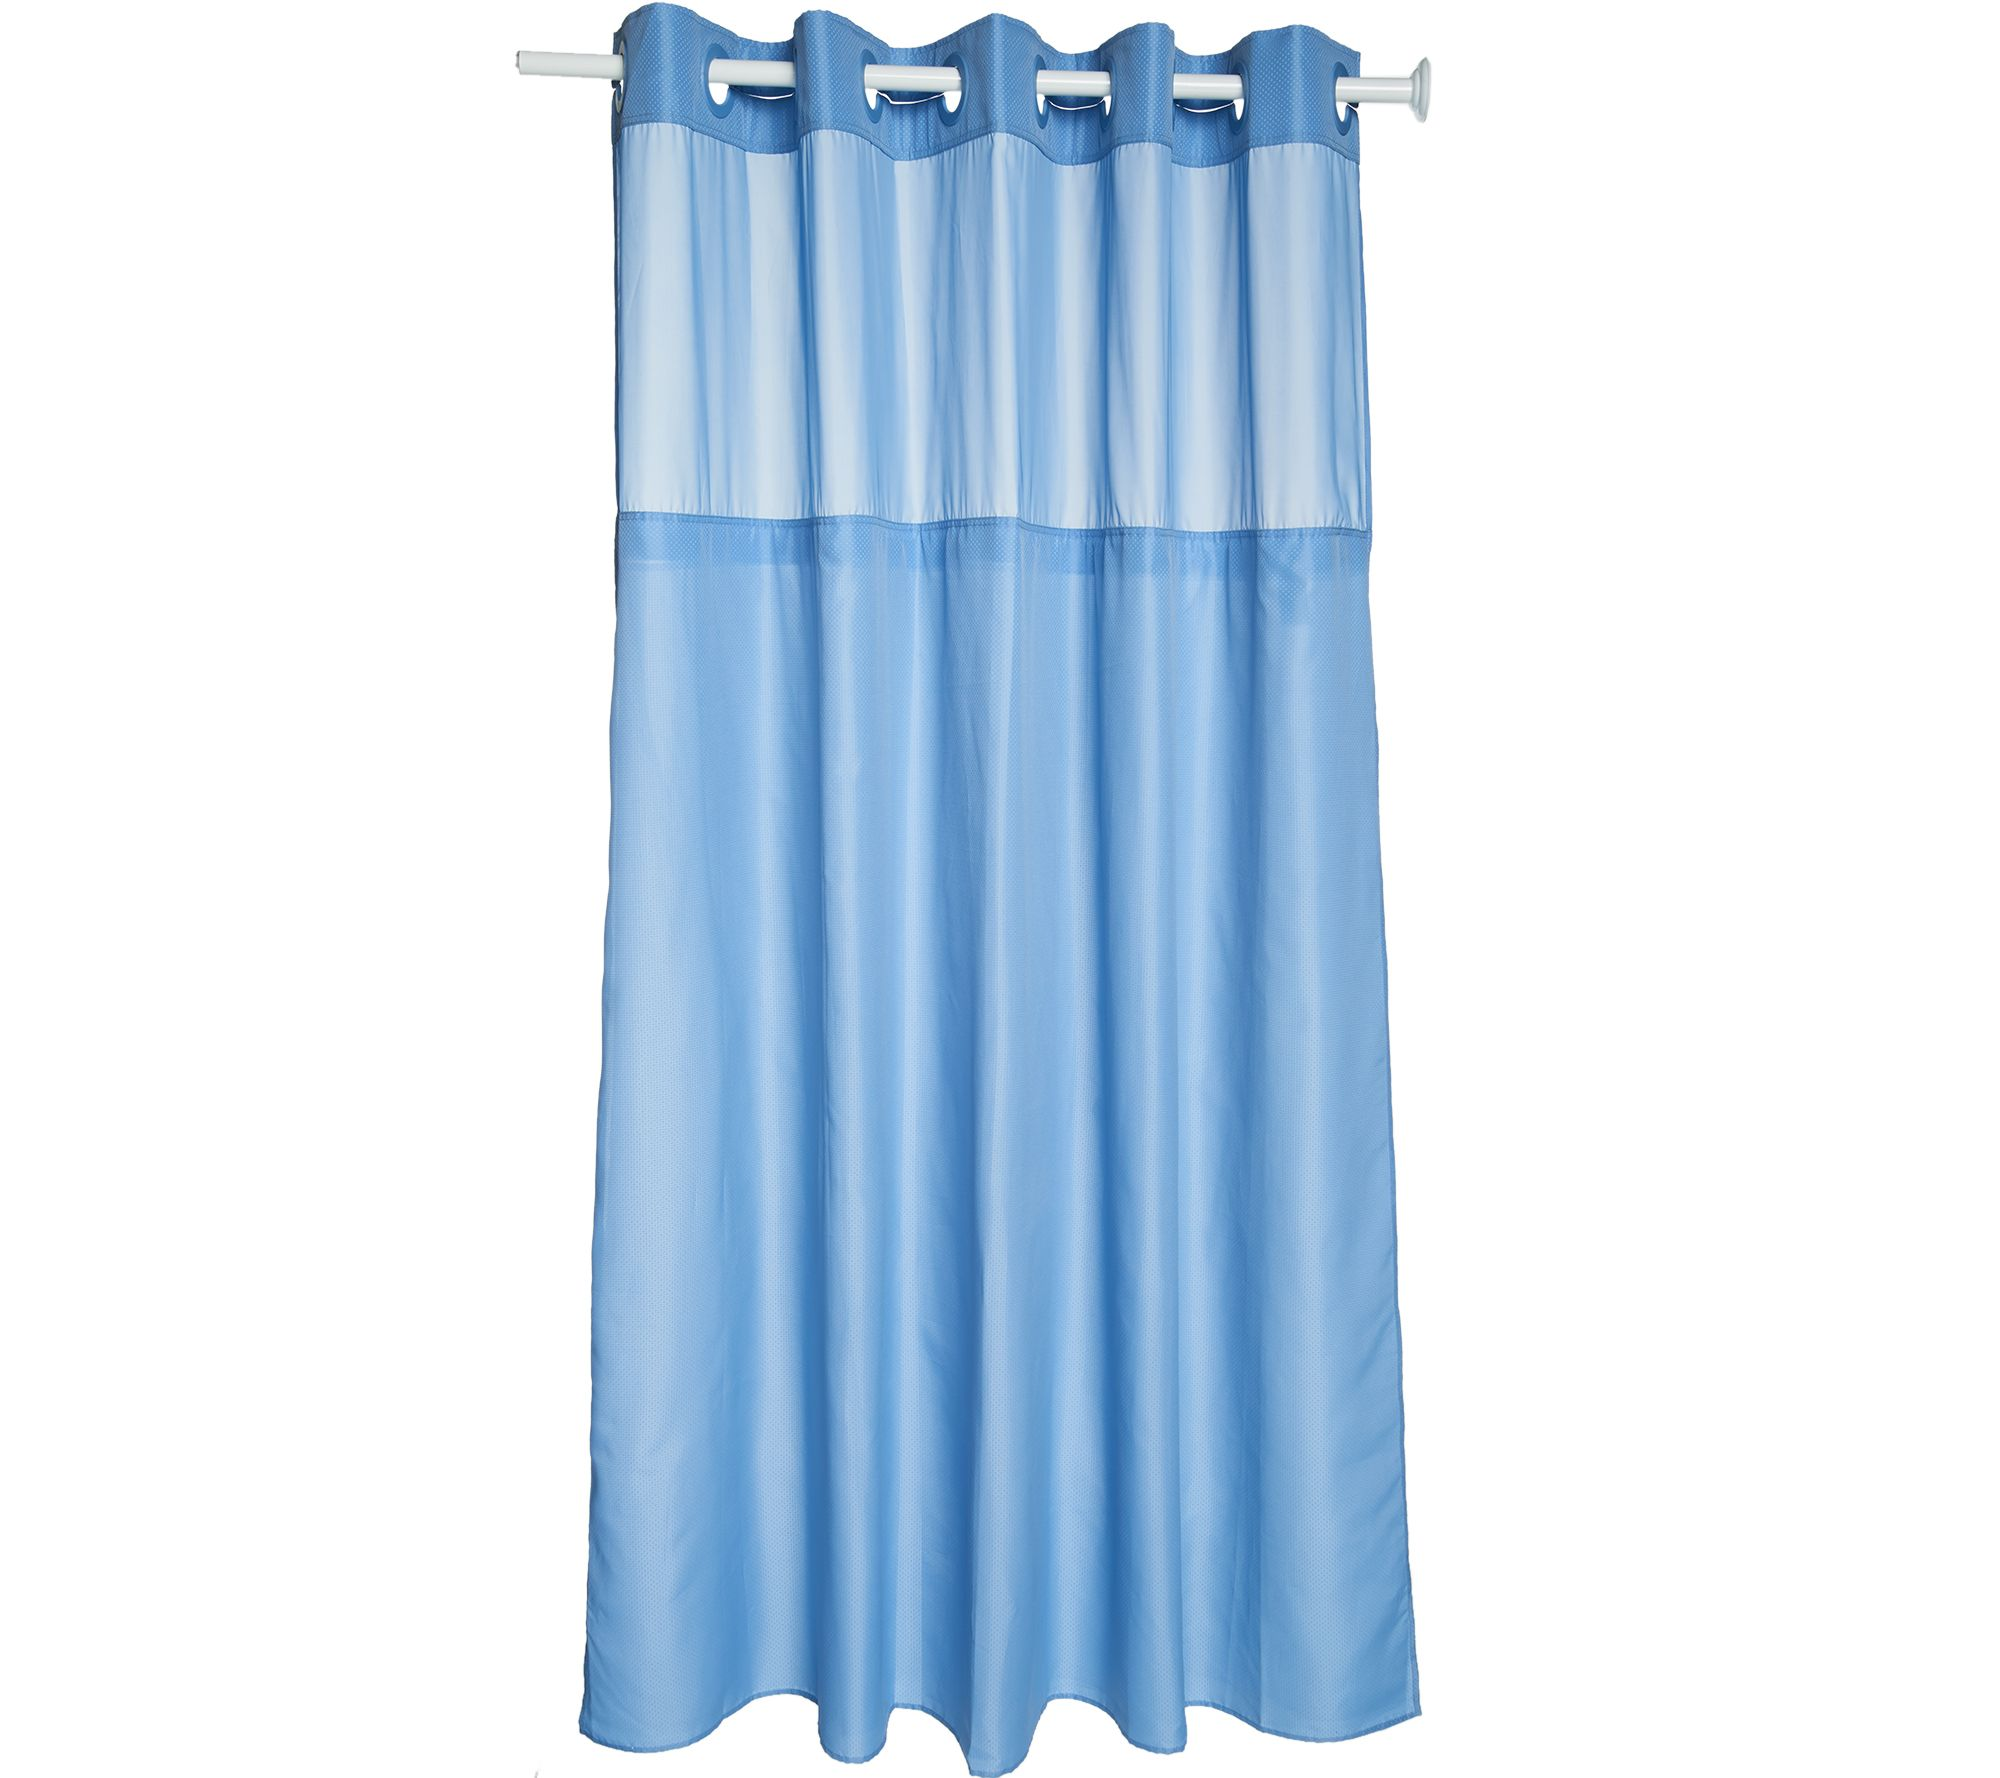 Shower Curtains — Bath — For the Home — QVC.com